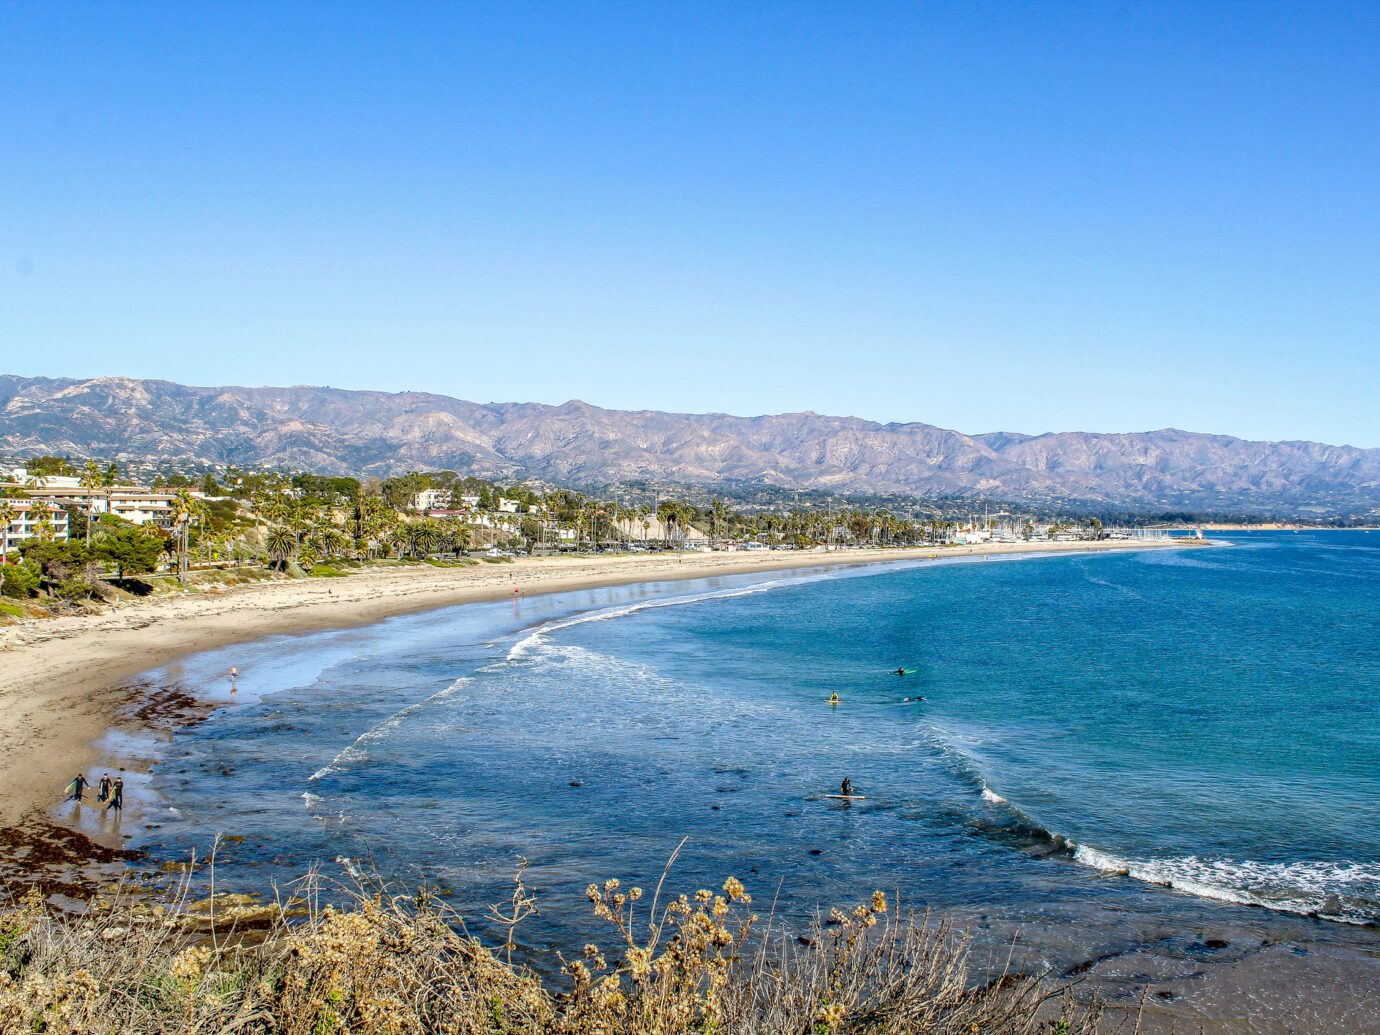 Beach in Montecito, California